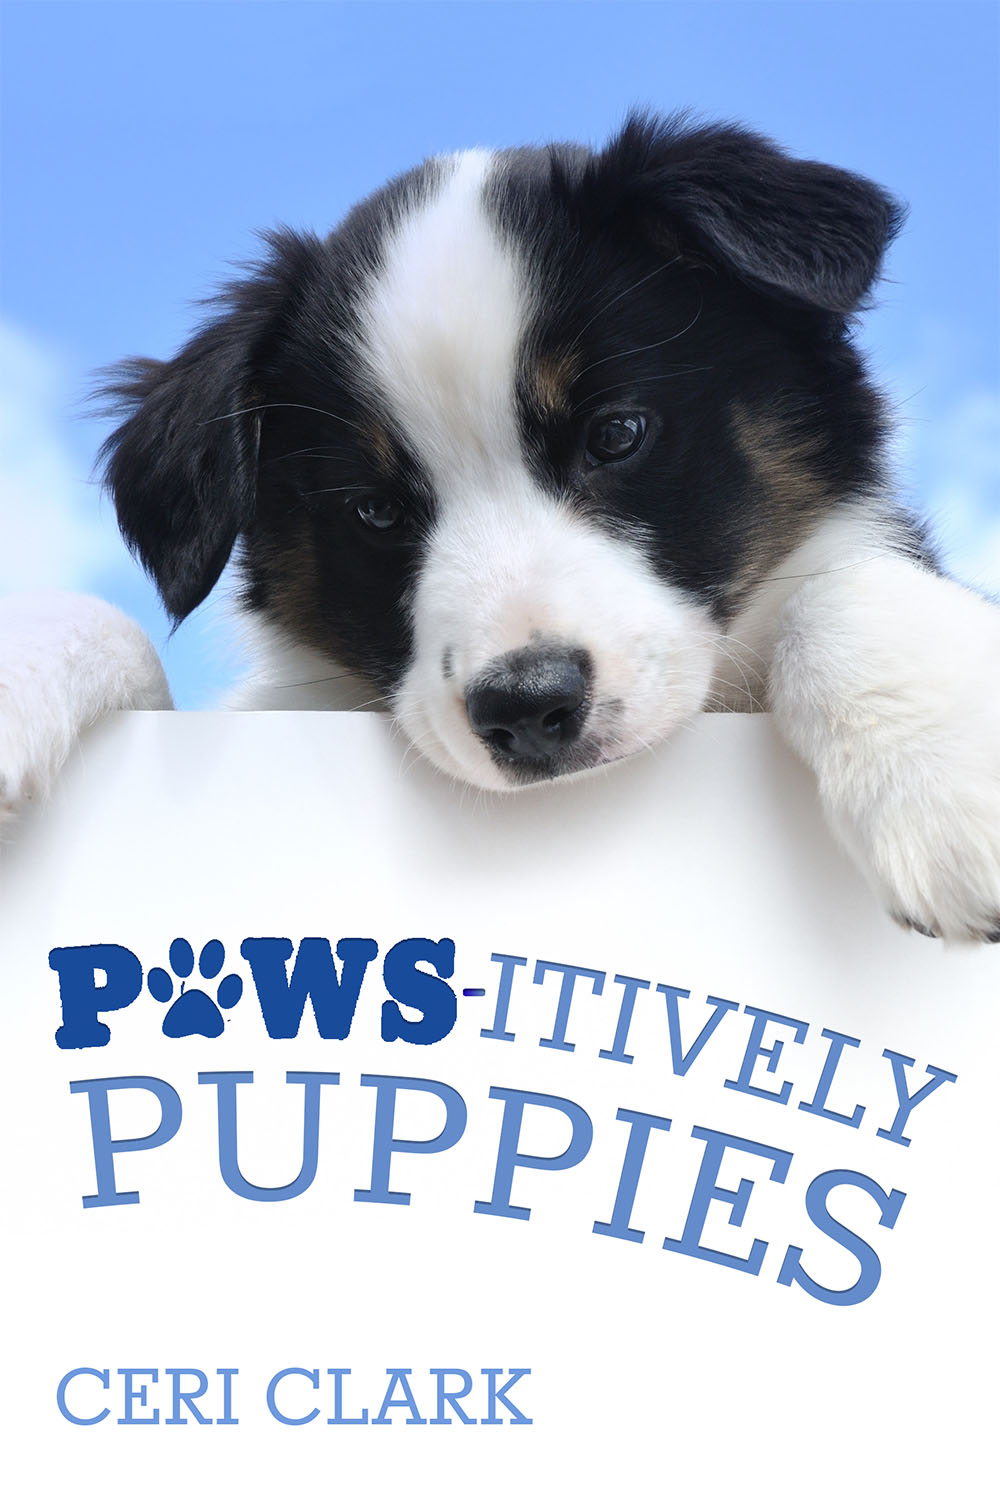 Pawsitively Puppies: The Secret Personal Internet Address & Password Log Book for Puppy & Dog Lovers